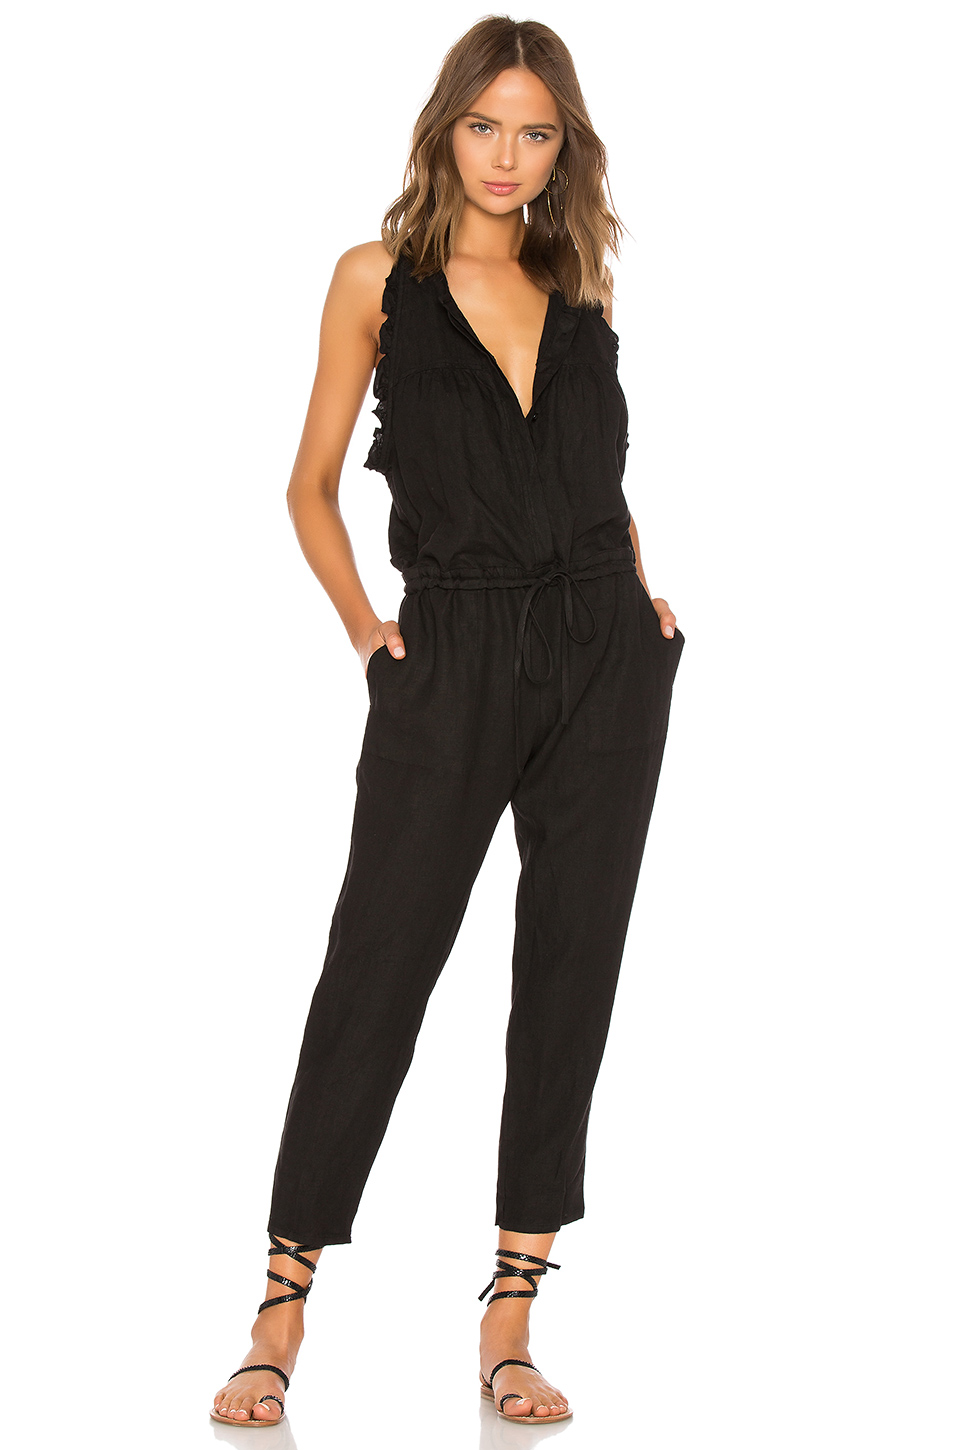 Buy Original Enza Costa French Linen Easy Jumpsuit at Indonesia ... a8c8d38ea